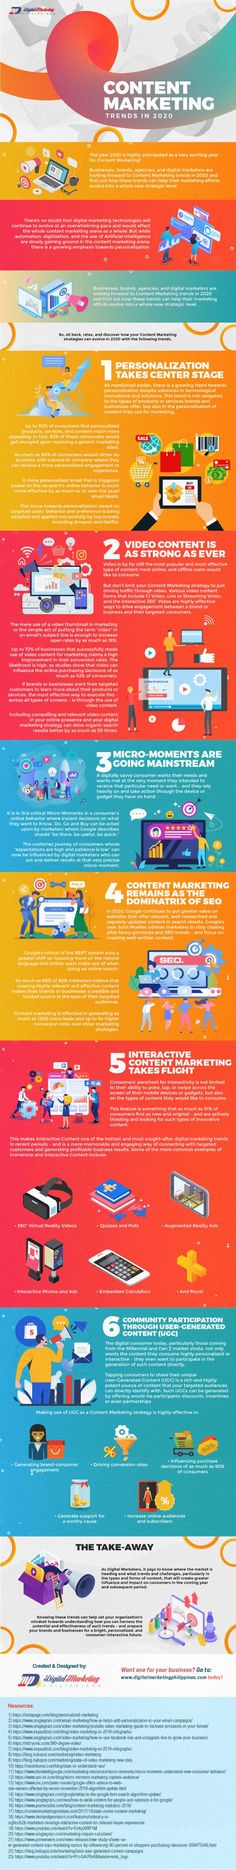 Learn more about how you can use effective content marketing to drive traffic in this great infographic! Content Marketing Strategy, Influencer Marketing, Marketing Plan, Business Marketing, Online Marketing, Social Media Marketing, Affiliate Marketing, Business Tips, Internet Marketing